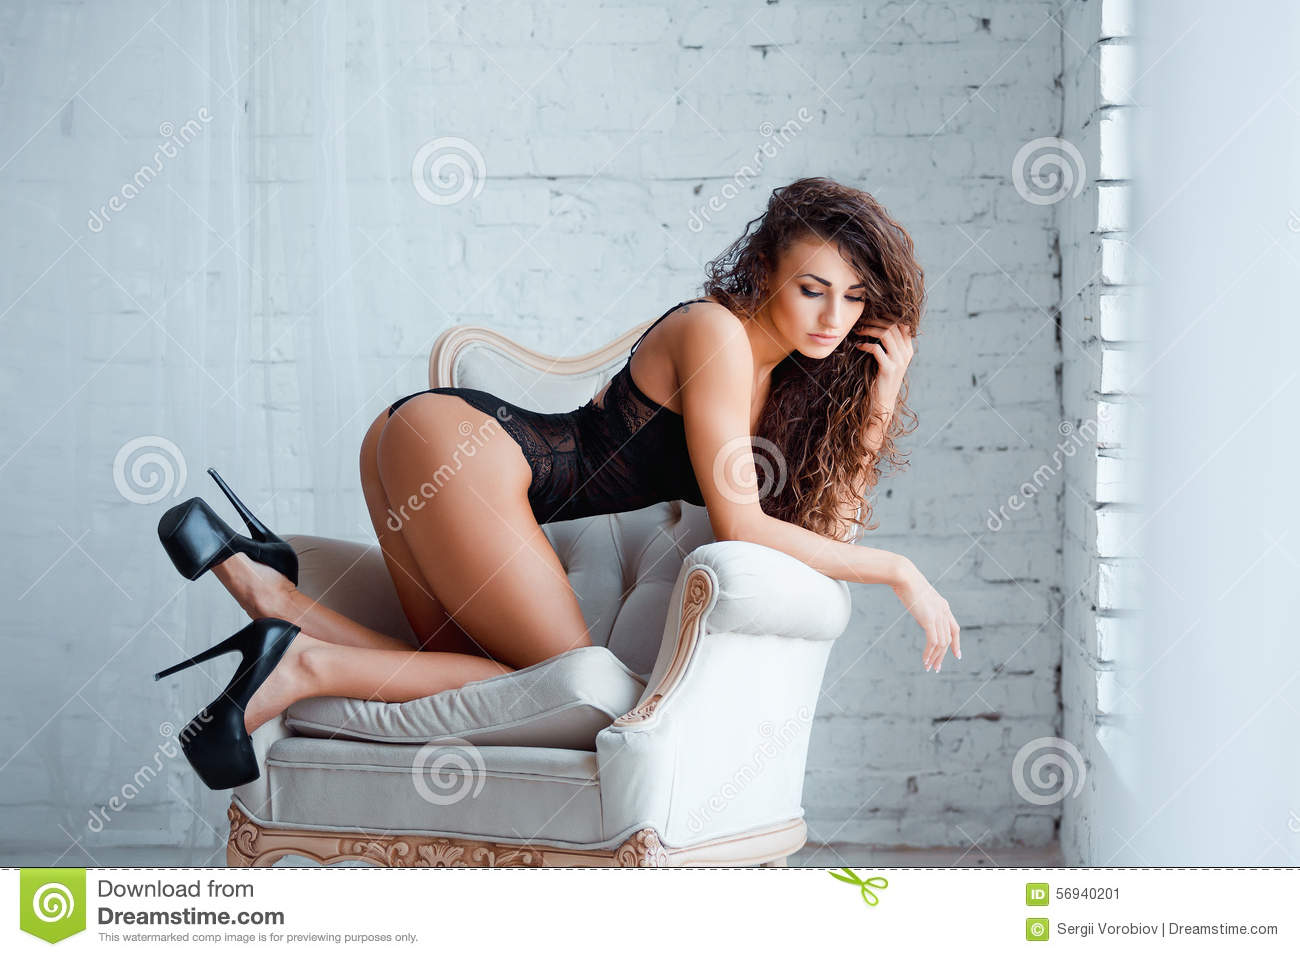 perfect, body, legs and of young woman stock image - image of girl